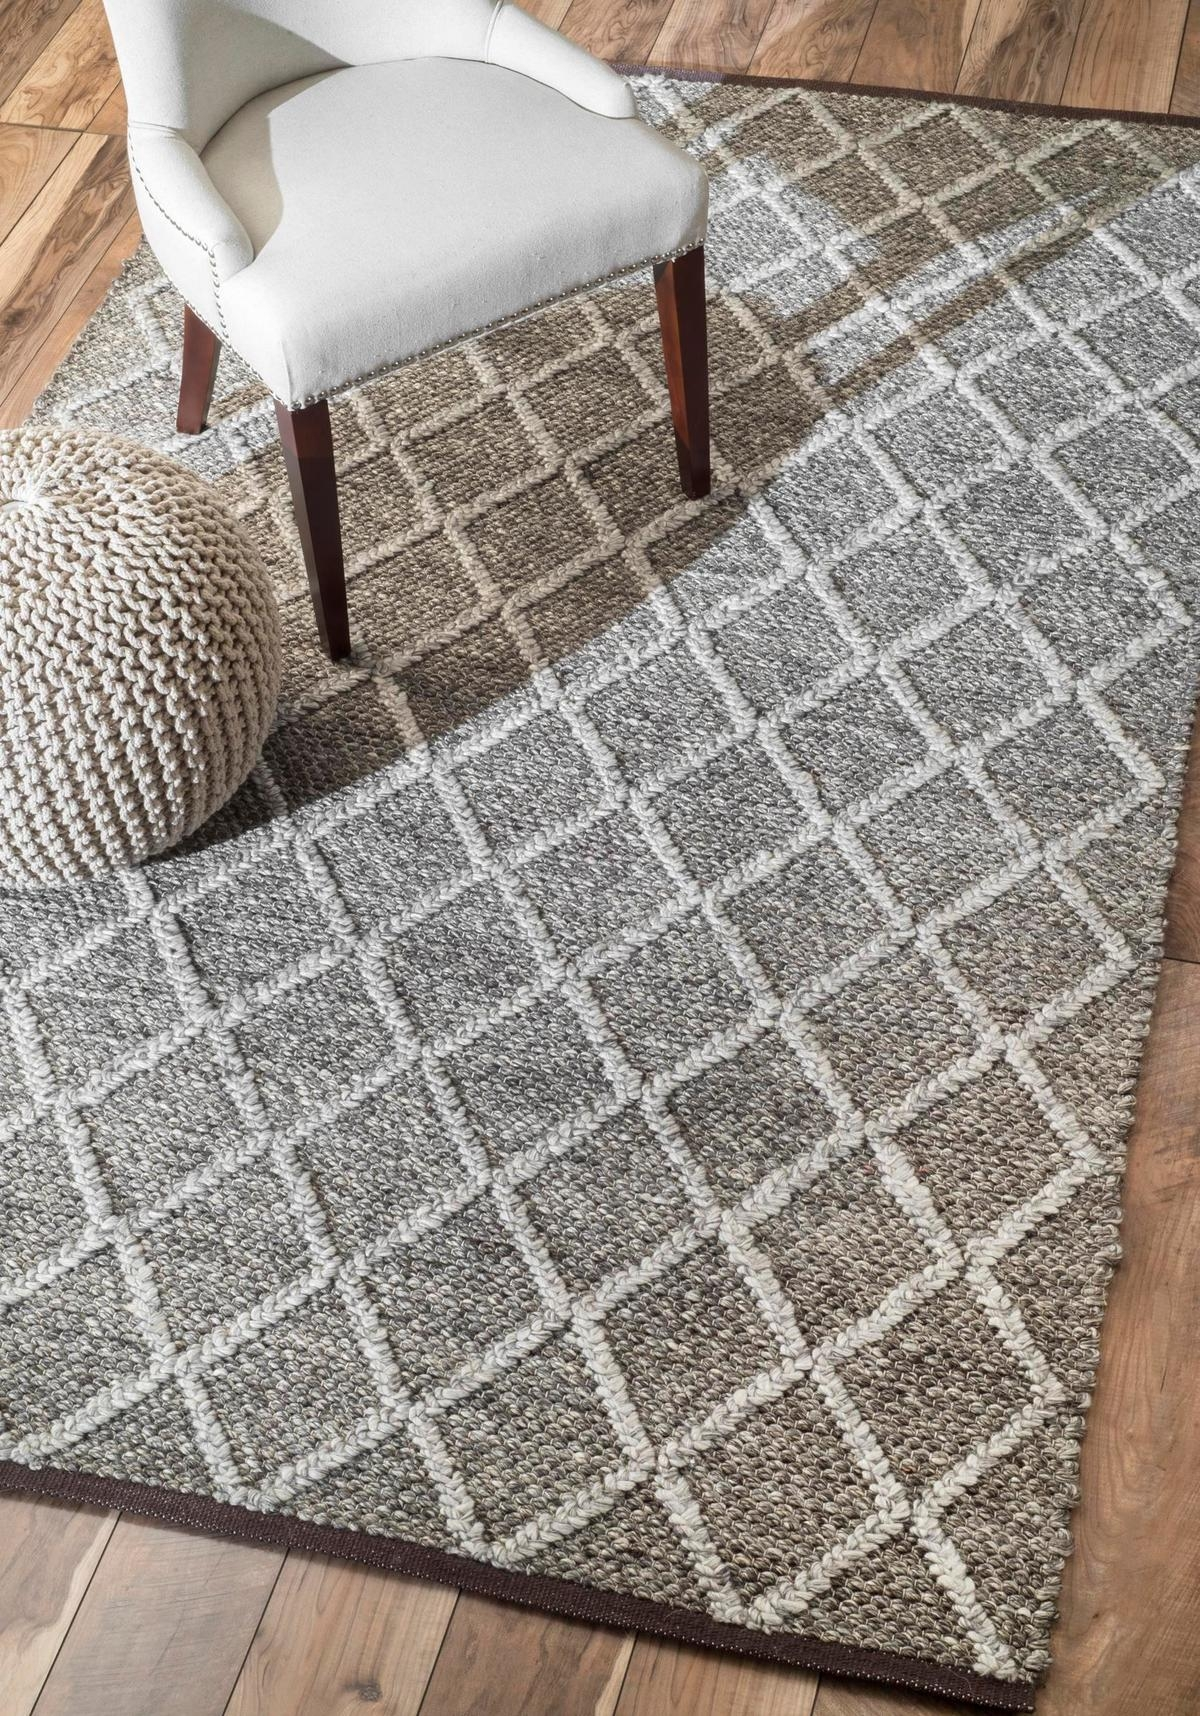 Gray Trellis Rug Tuscan Vs169 Double Carved Trellis Rug Trellis Throughout Flat Weave Wool Area Rugs (#6 of 15)